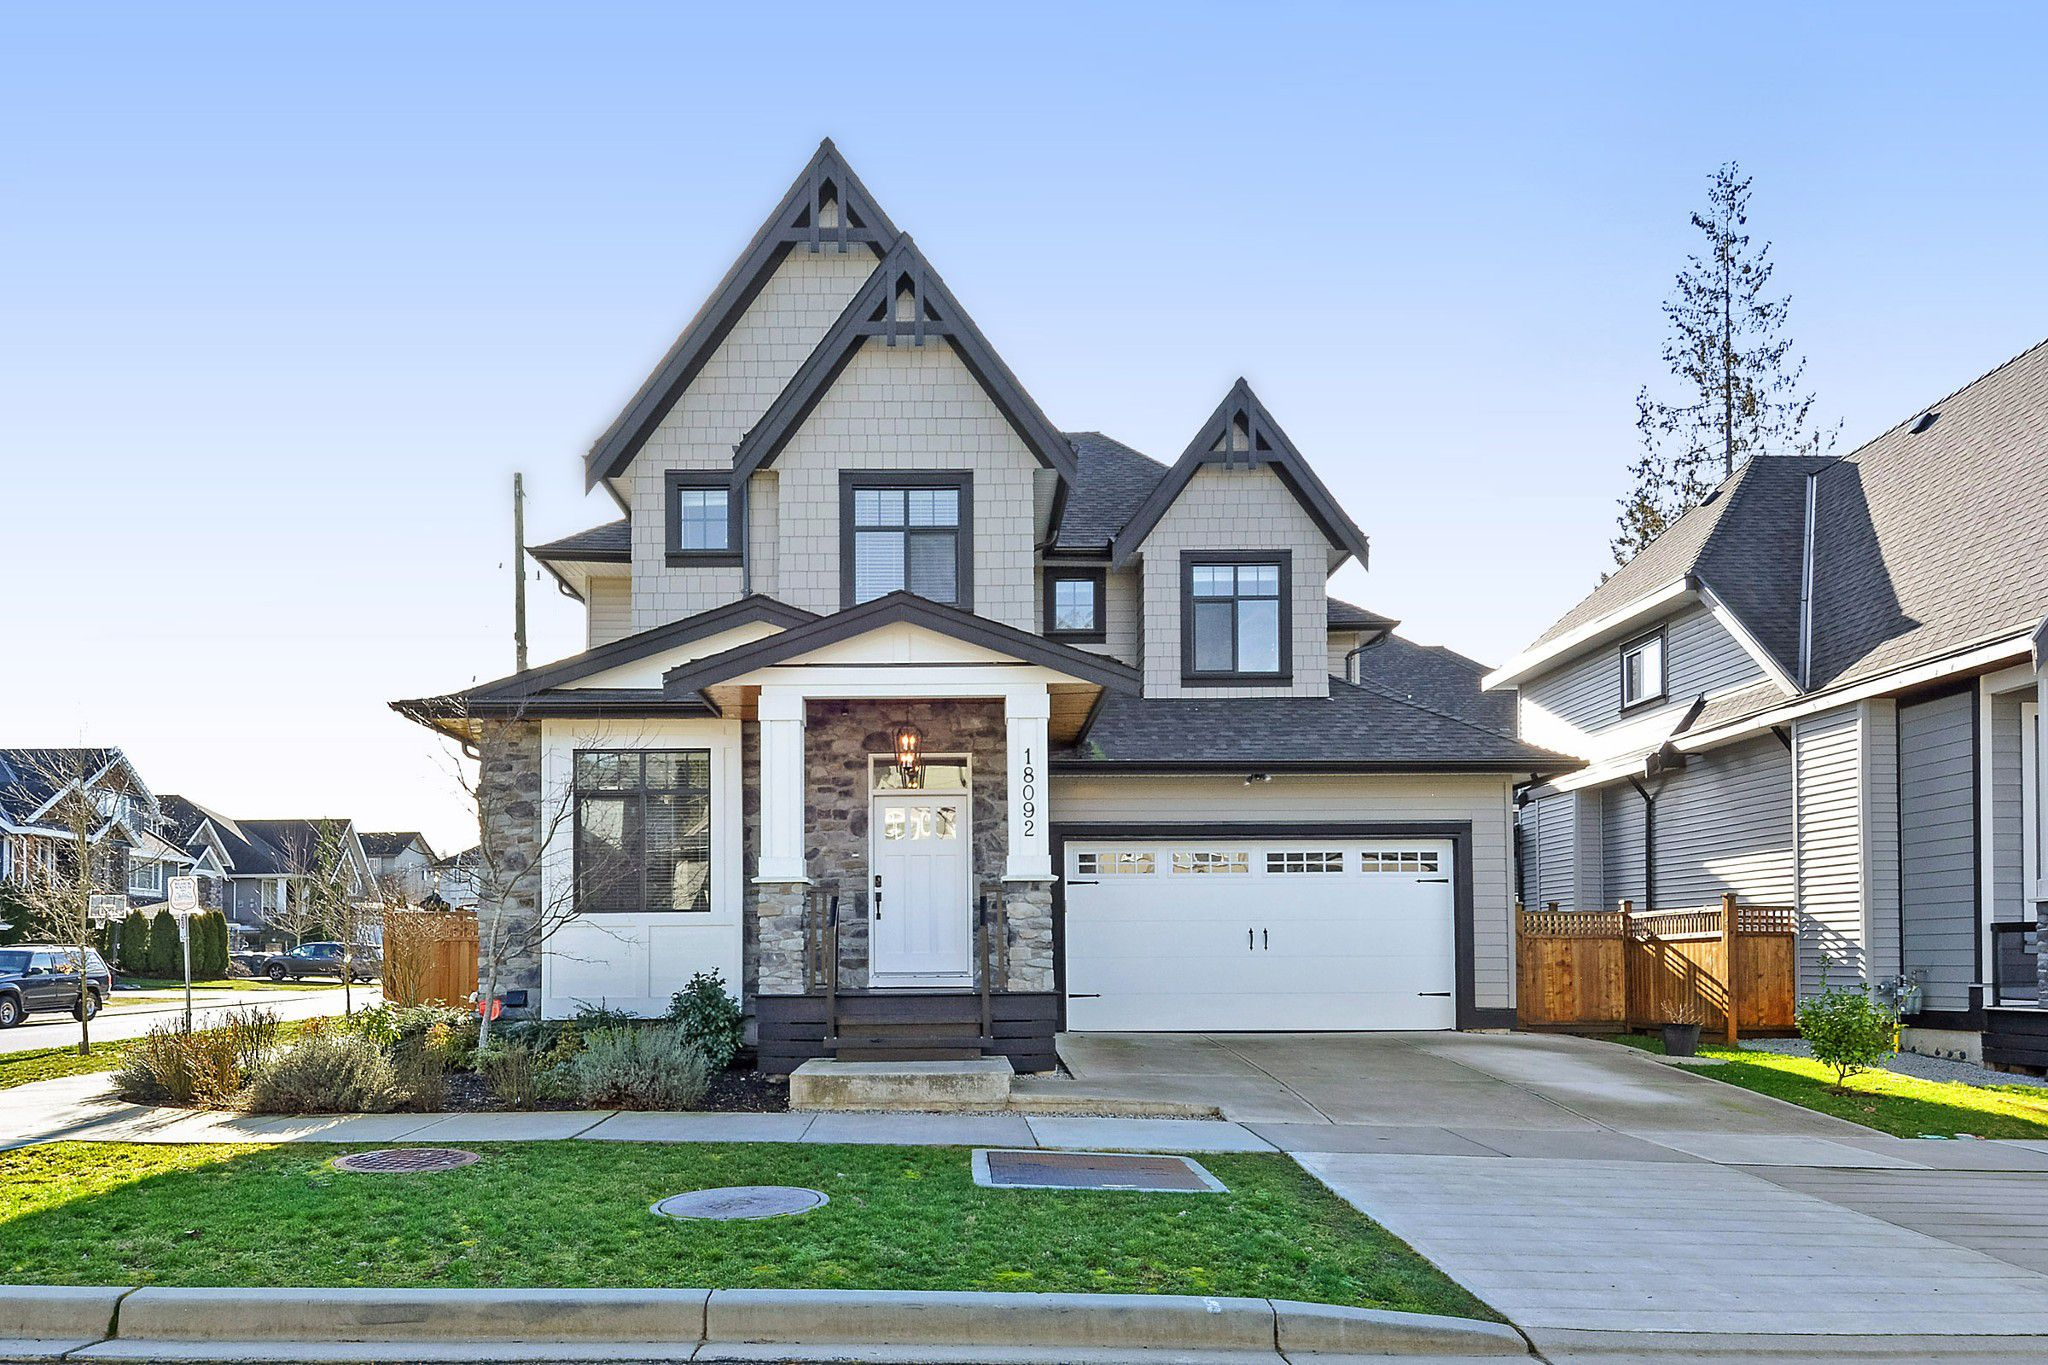 Main Photo: 18092 67 Avenue in Surrey: Cloverdale BC House for sale (Cloverdale)  : MLS®# R2336460